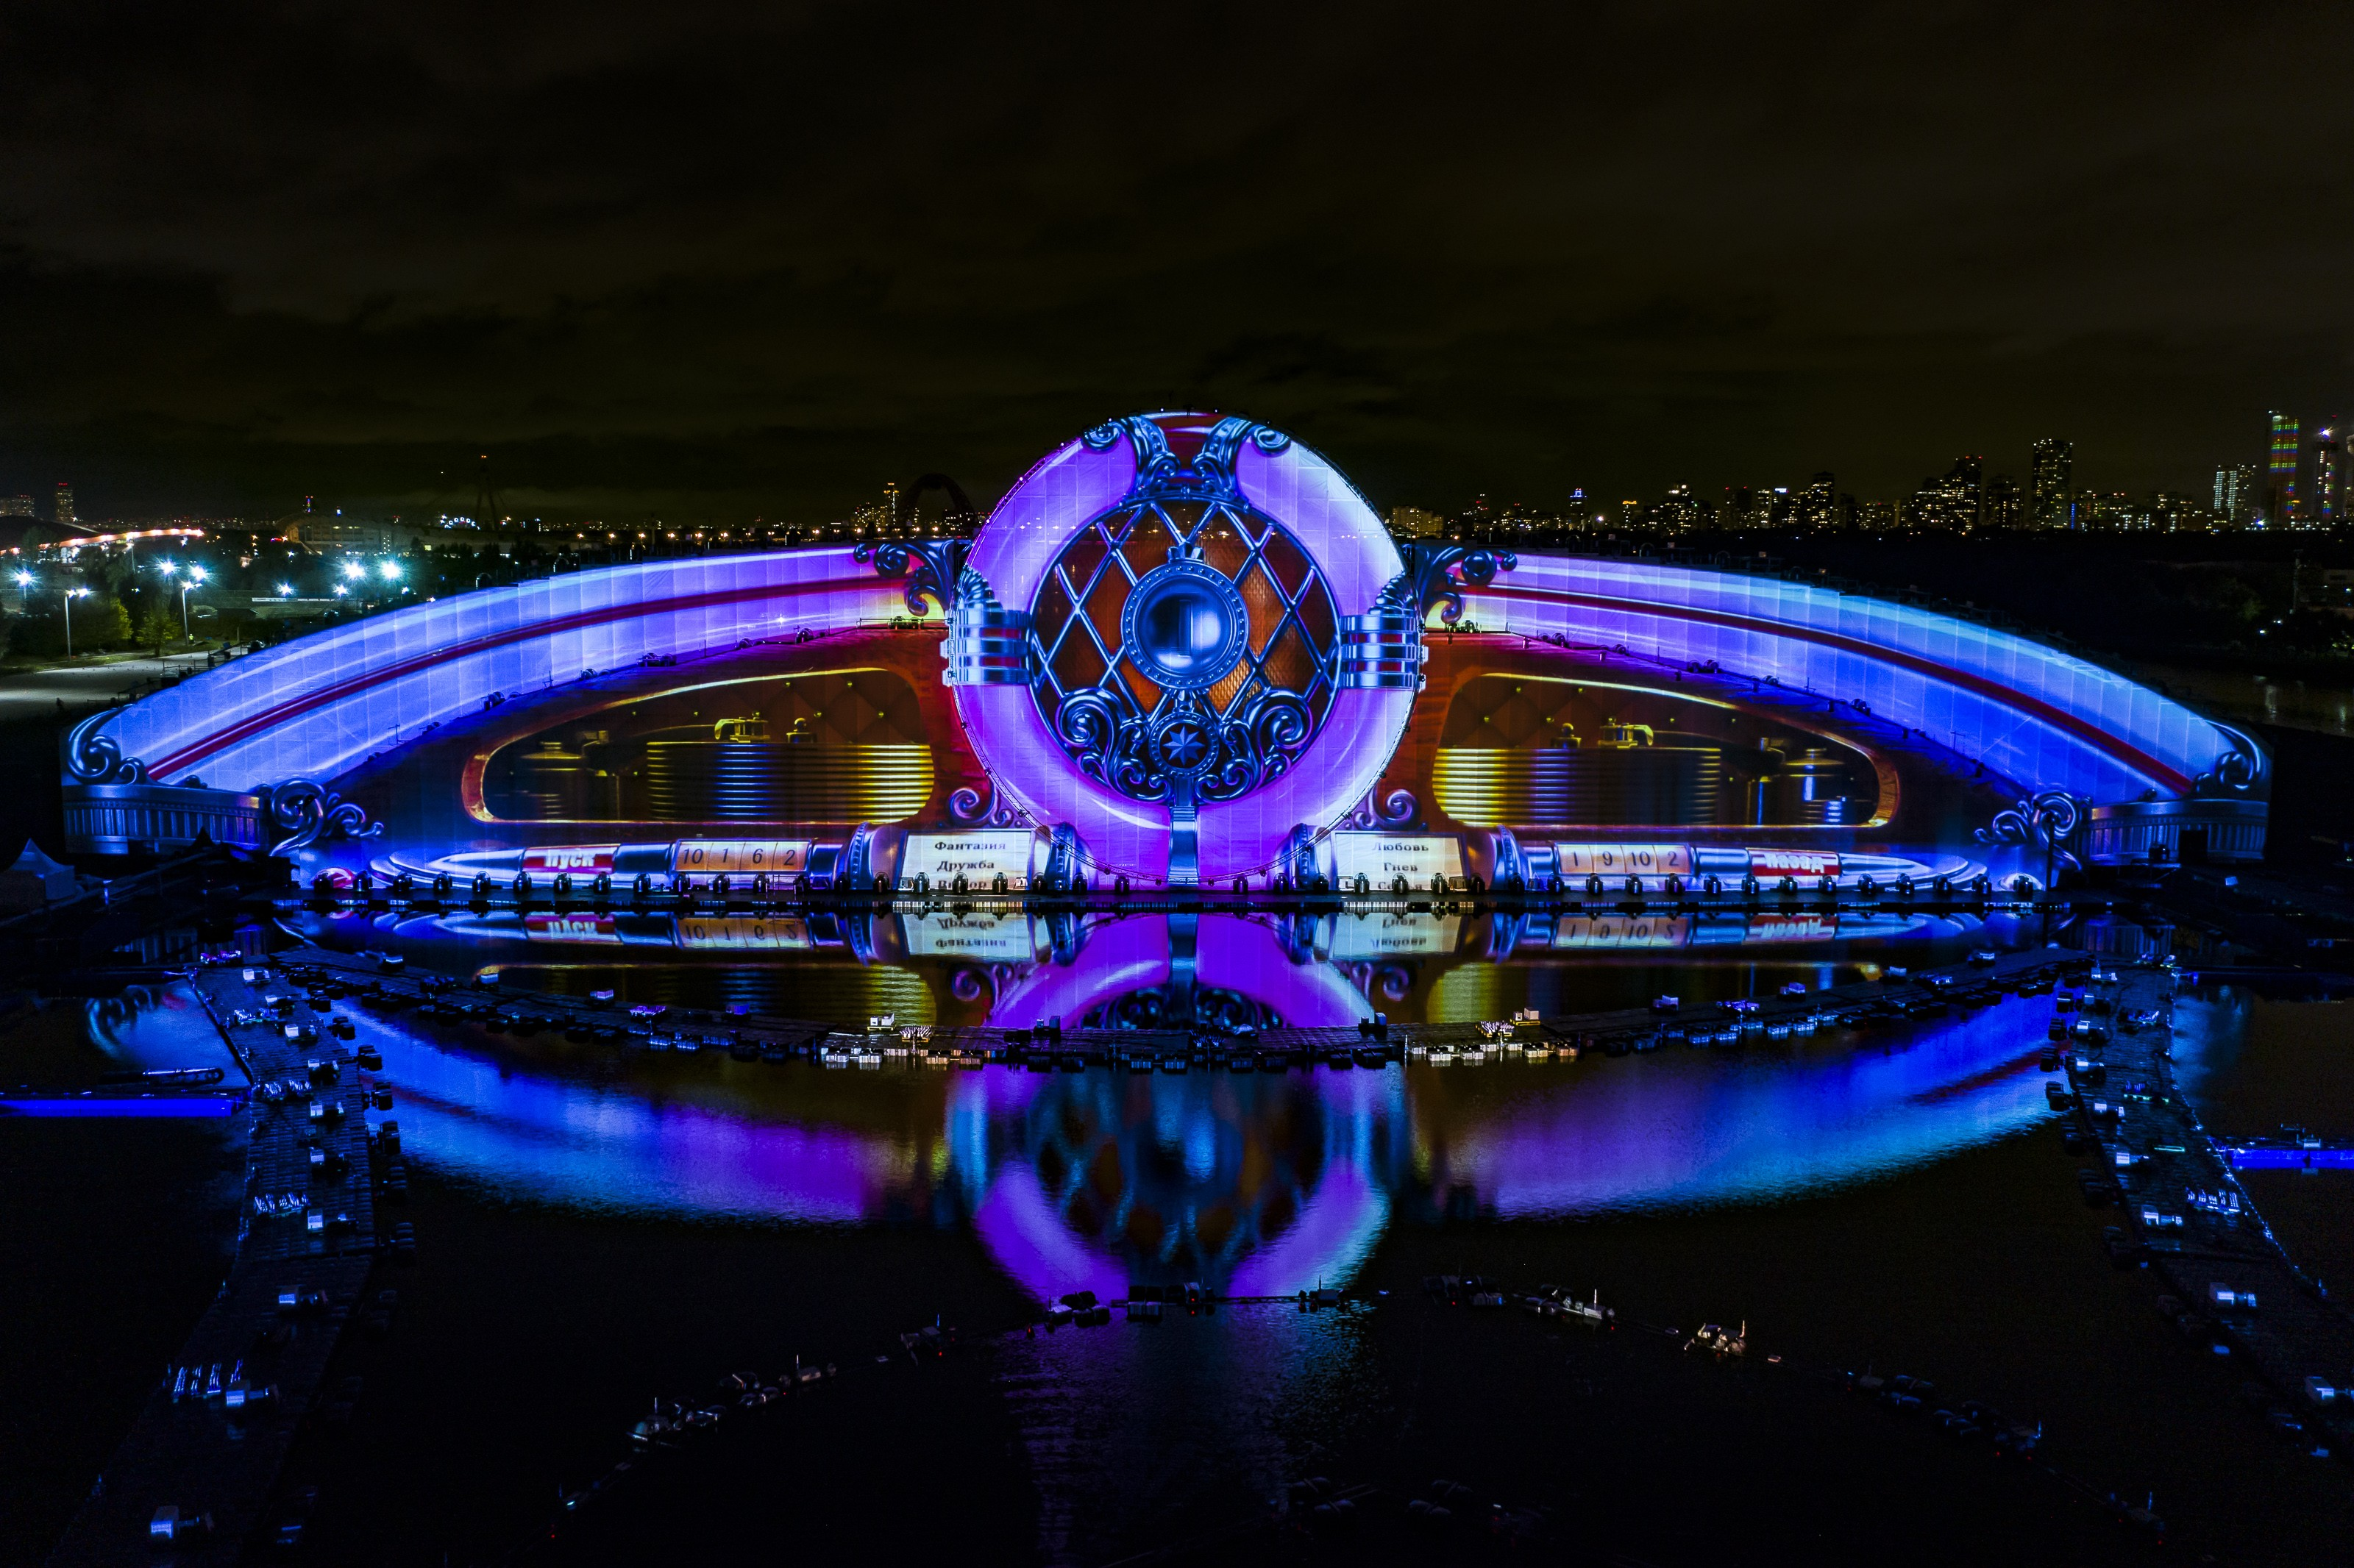 Art Vision, the largest video mapping show in the world